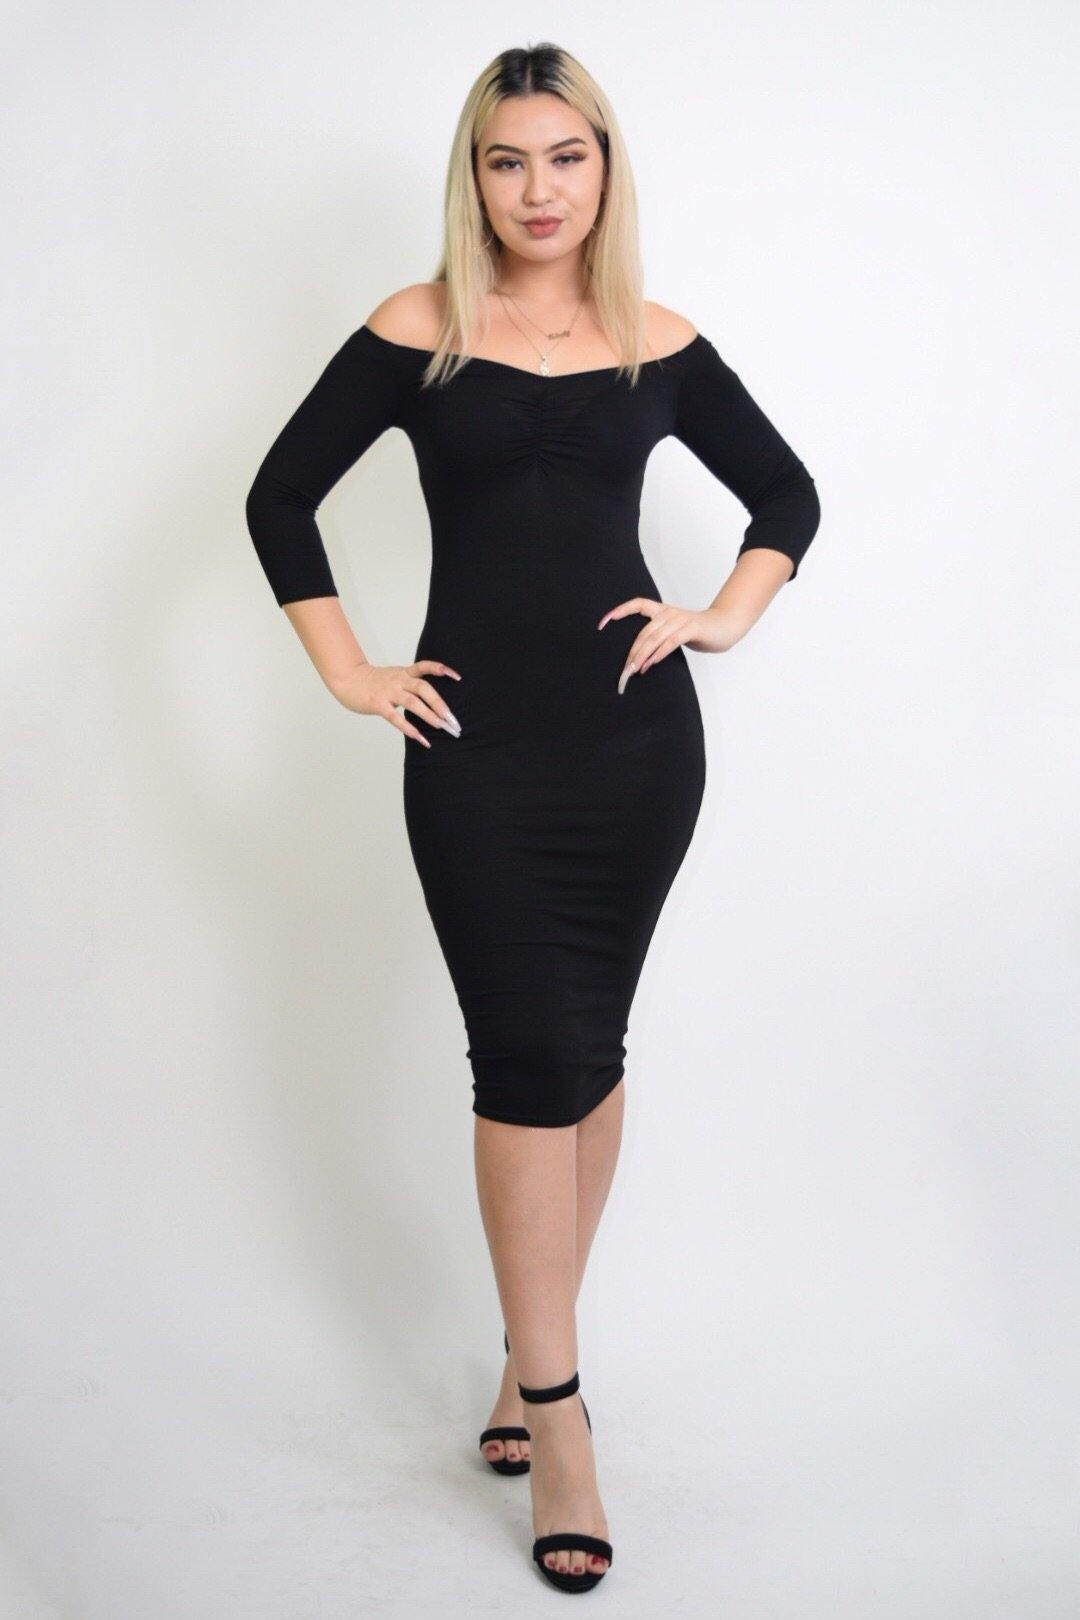 Sabrina Sweetheart Black Dress